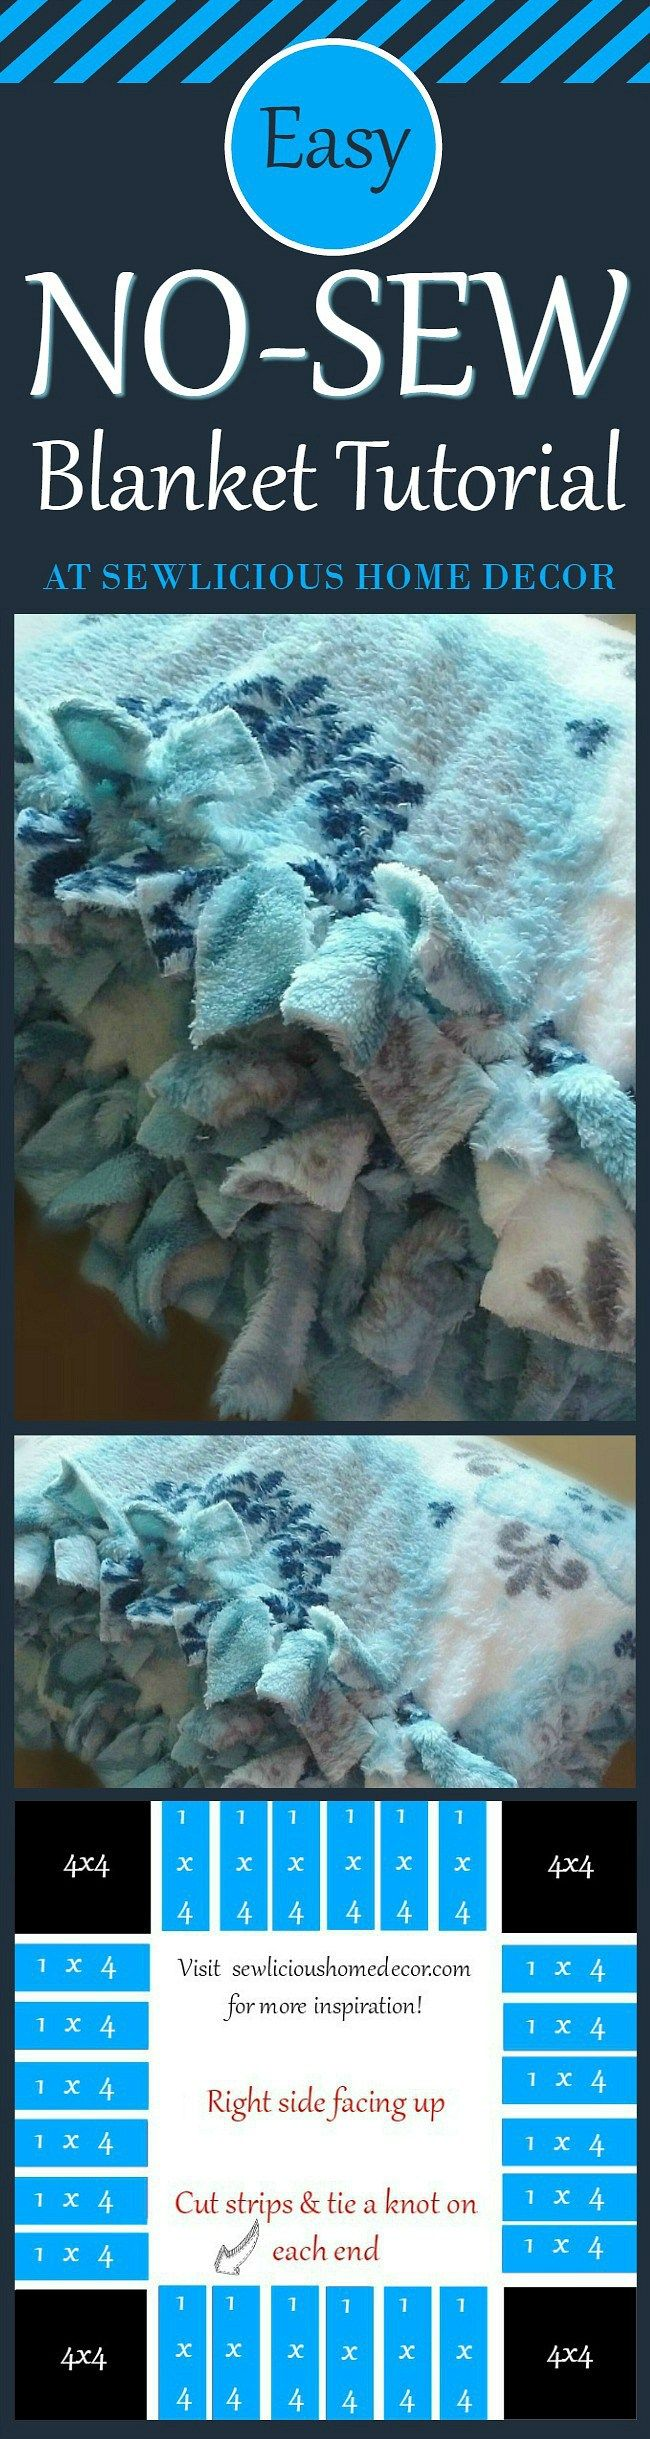 Easy No Sew Blanket Tutorial. Anyone can make this! If you can cut fabric and tie a knot you can make this! sewlicioushomedecor.com